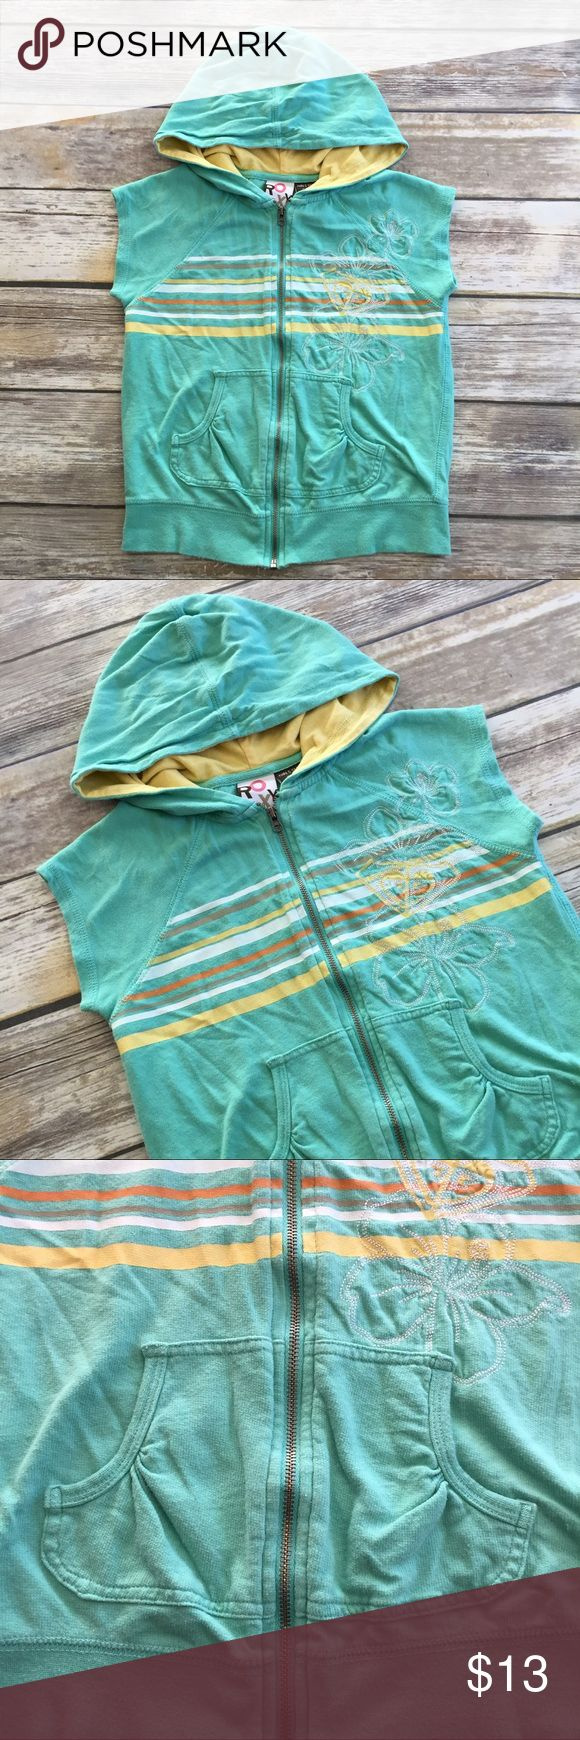 Roxy Sleeveless Hoodie Aqua blue and yellow zip up sleeveless hoodie with kangaroo pockets and floral embroidery on the front. Size small/4. Excellent condition. Roxy Shirts & Tops Sweatshirts & Hoodies